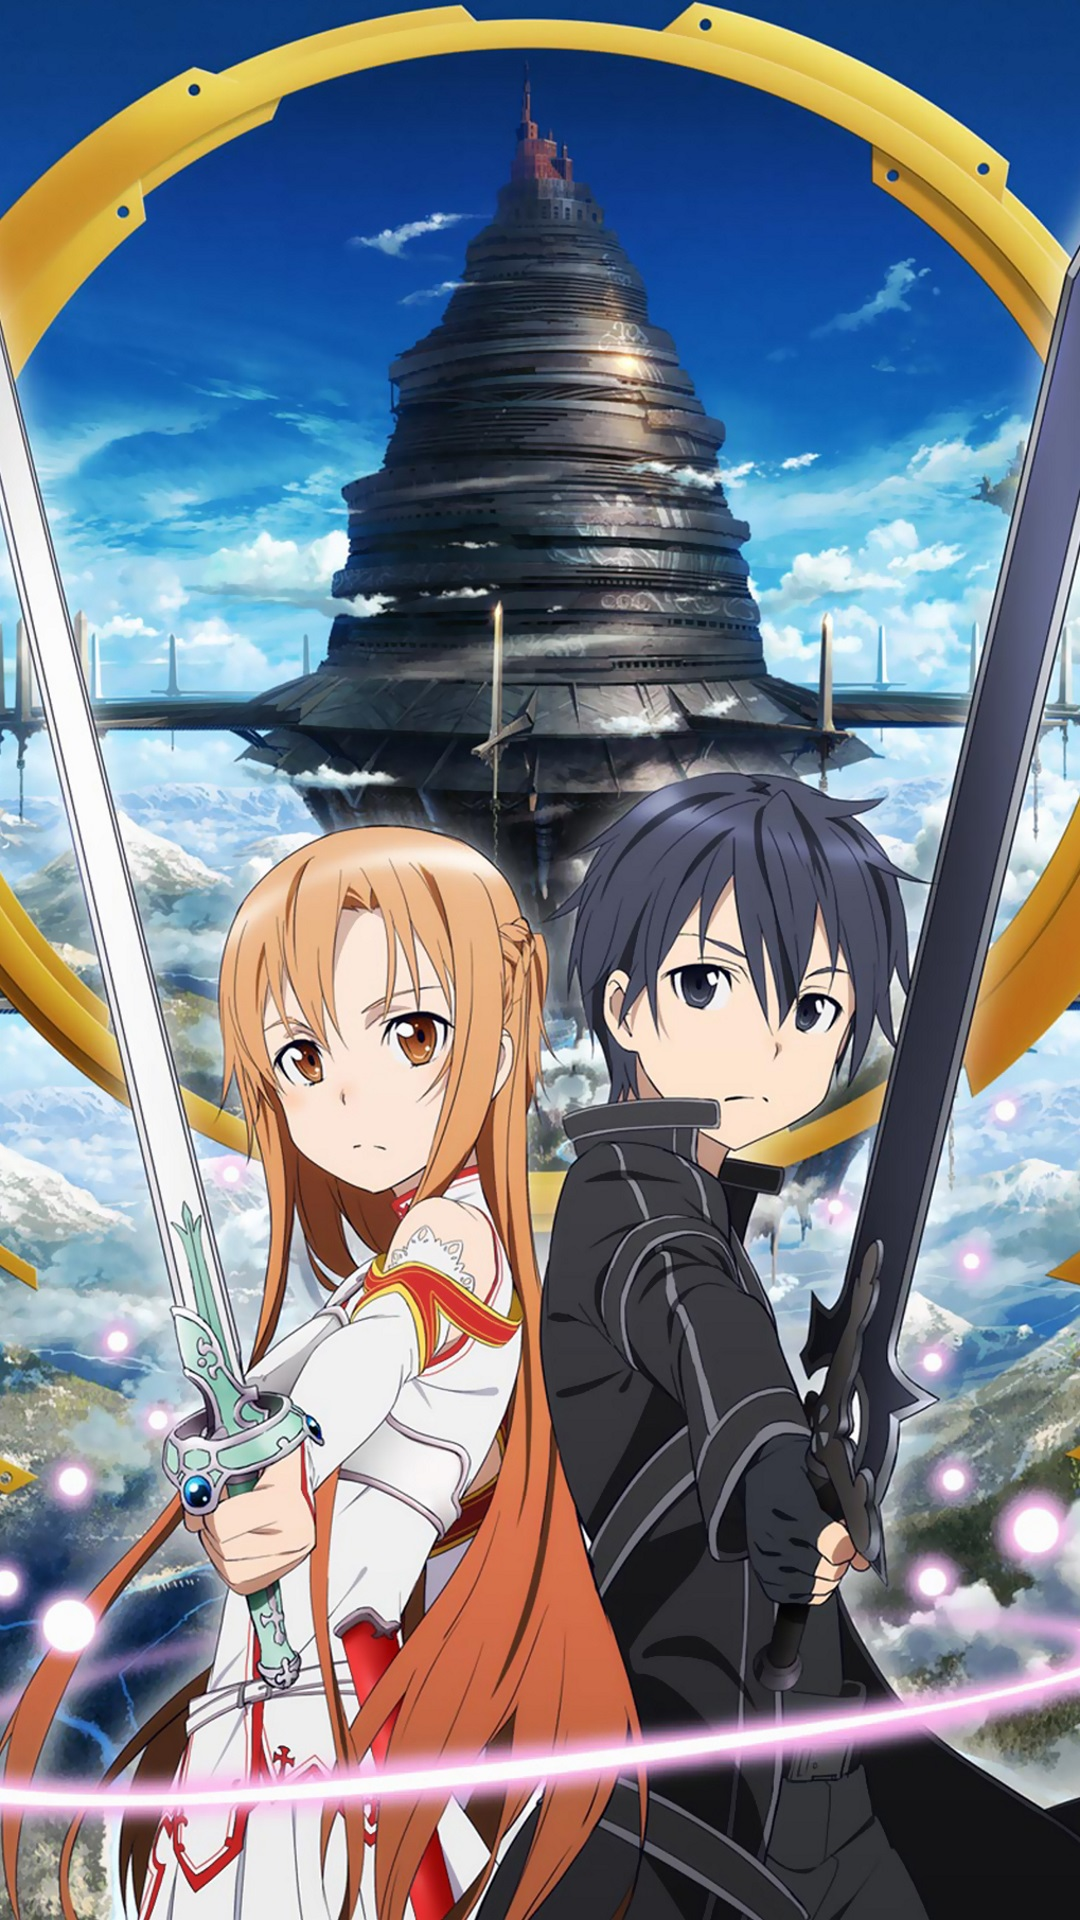 Sword Art Online Cell Phone Wallpaper